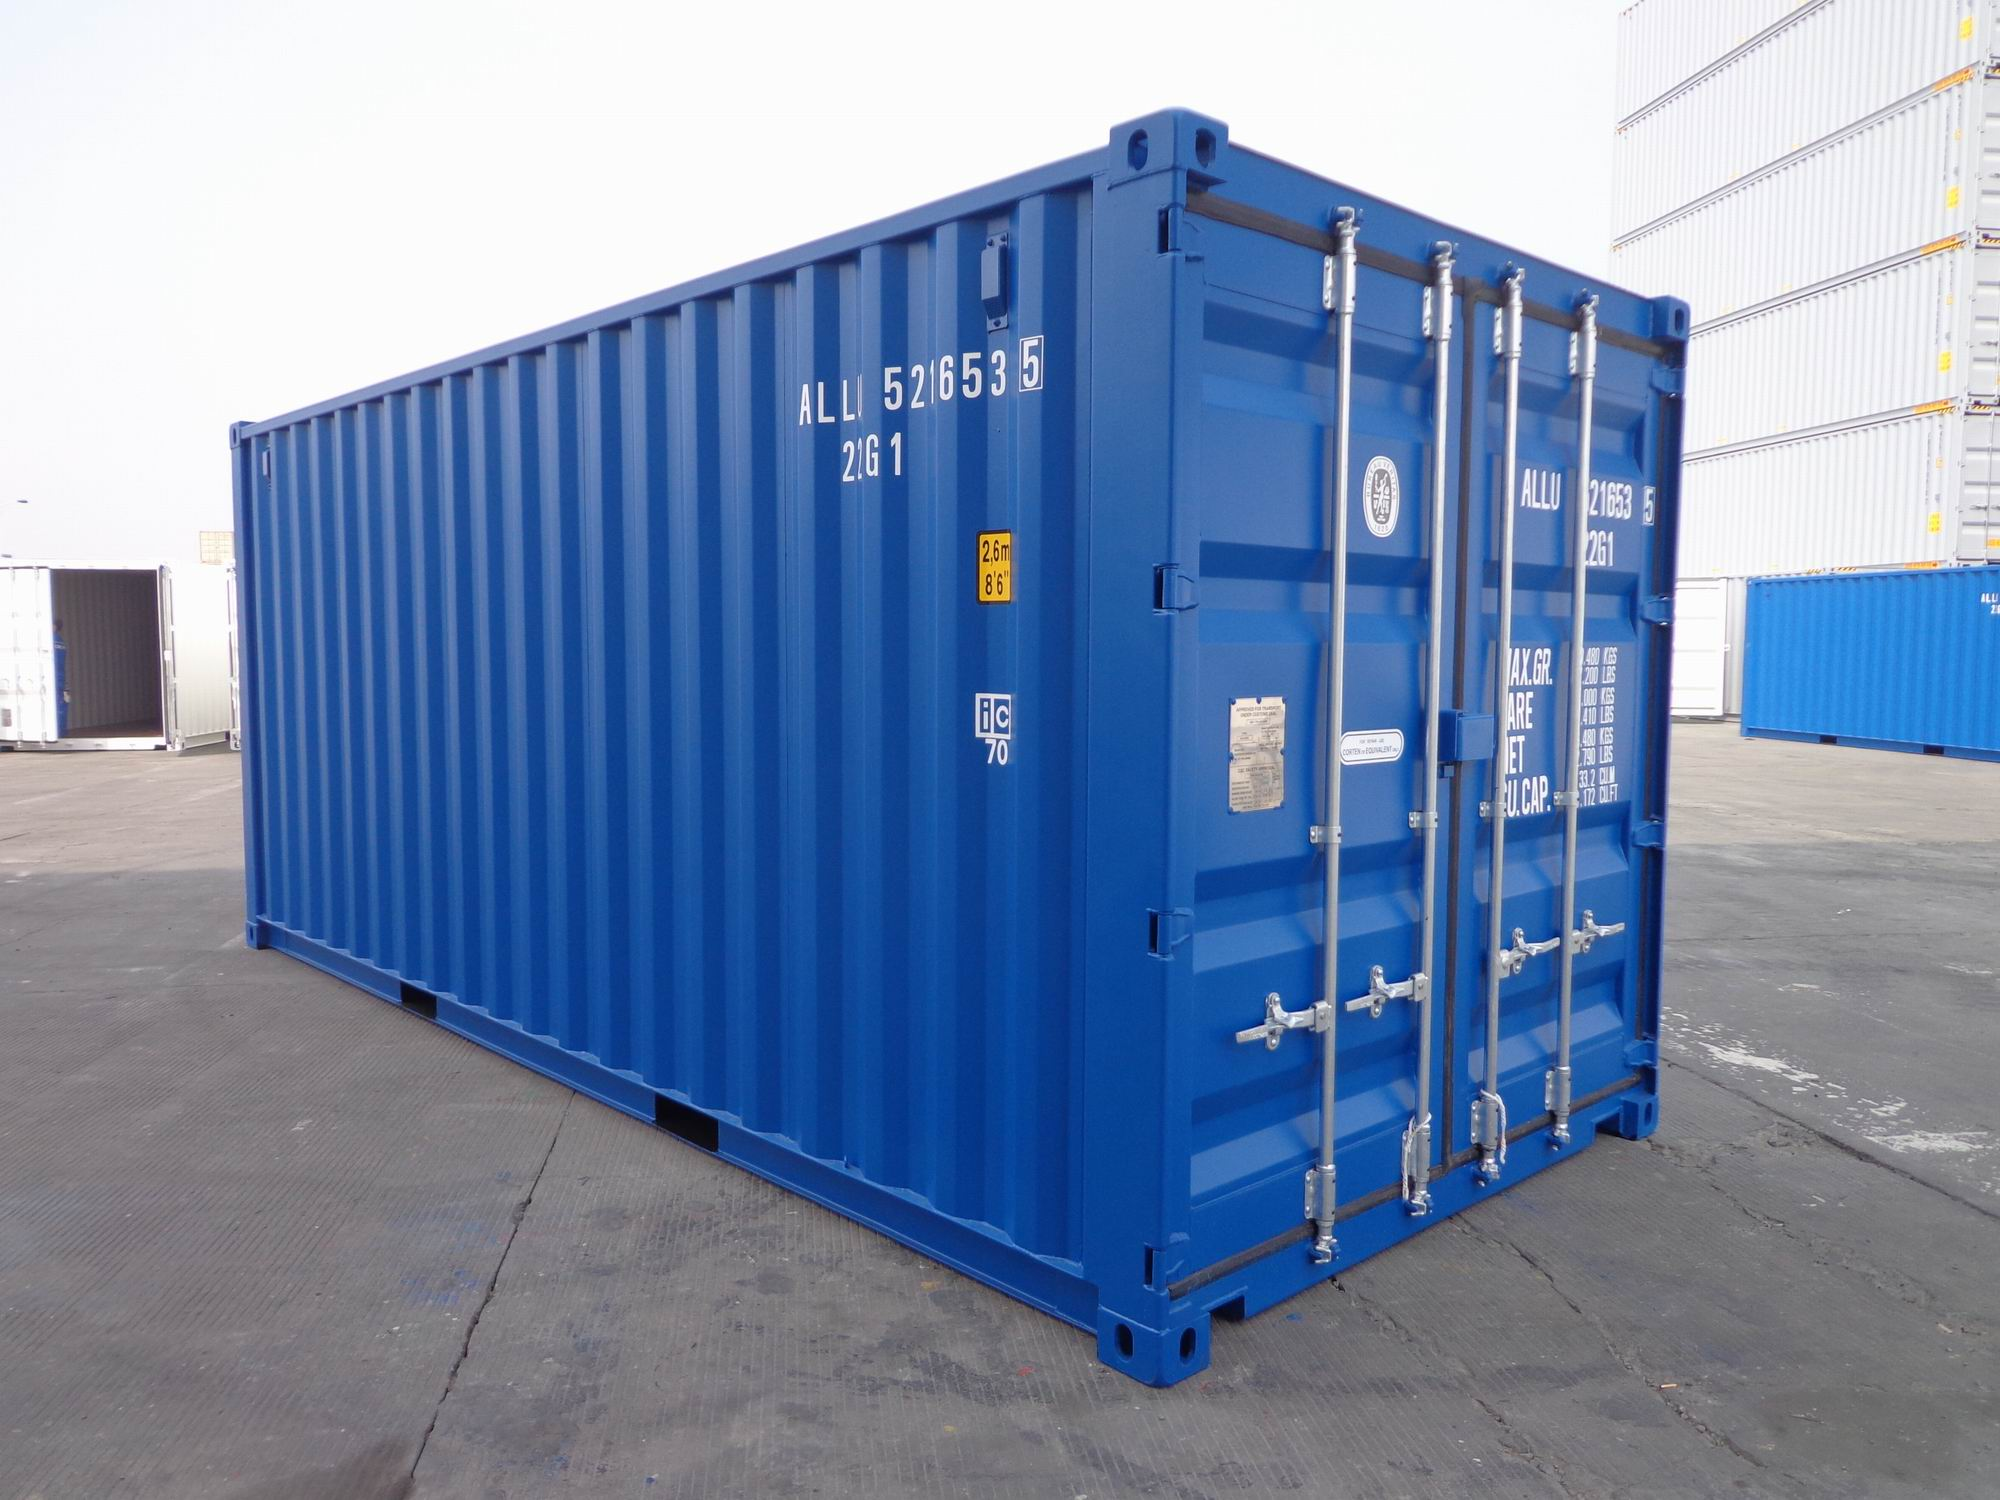 Container meting Hatech